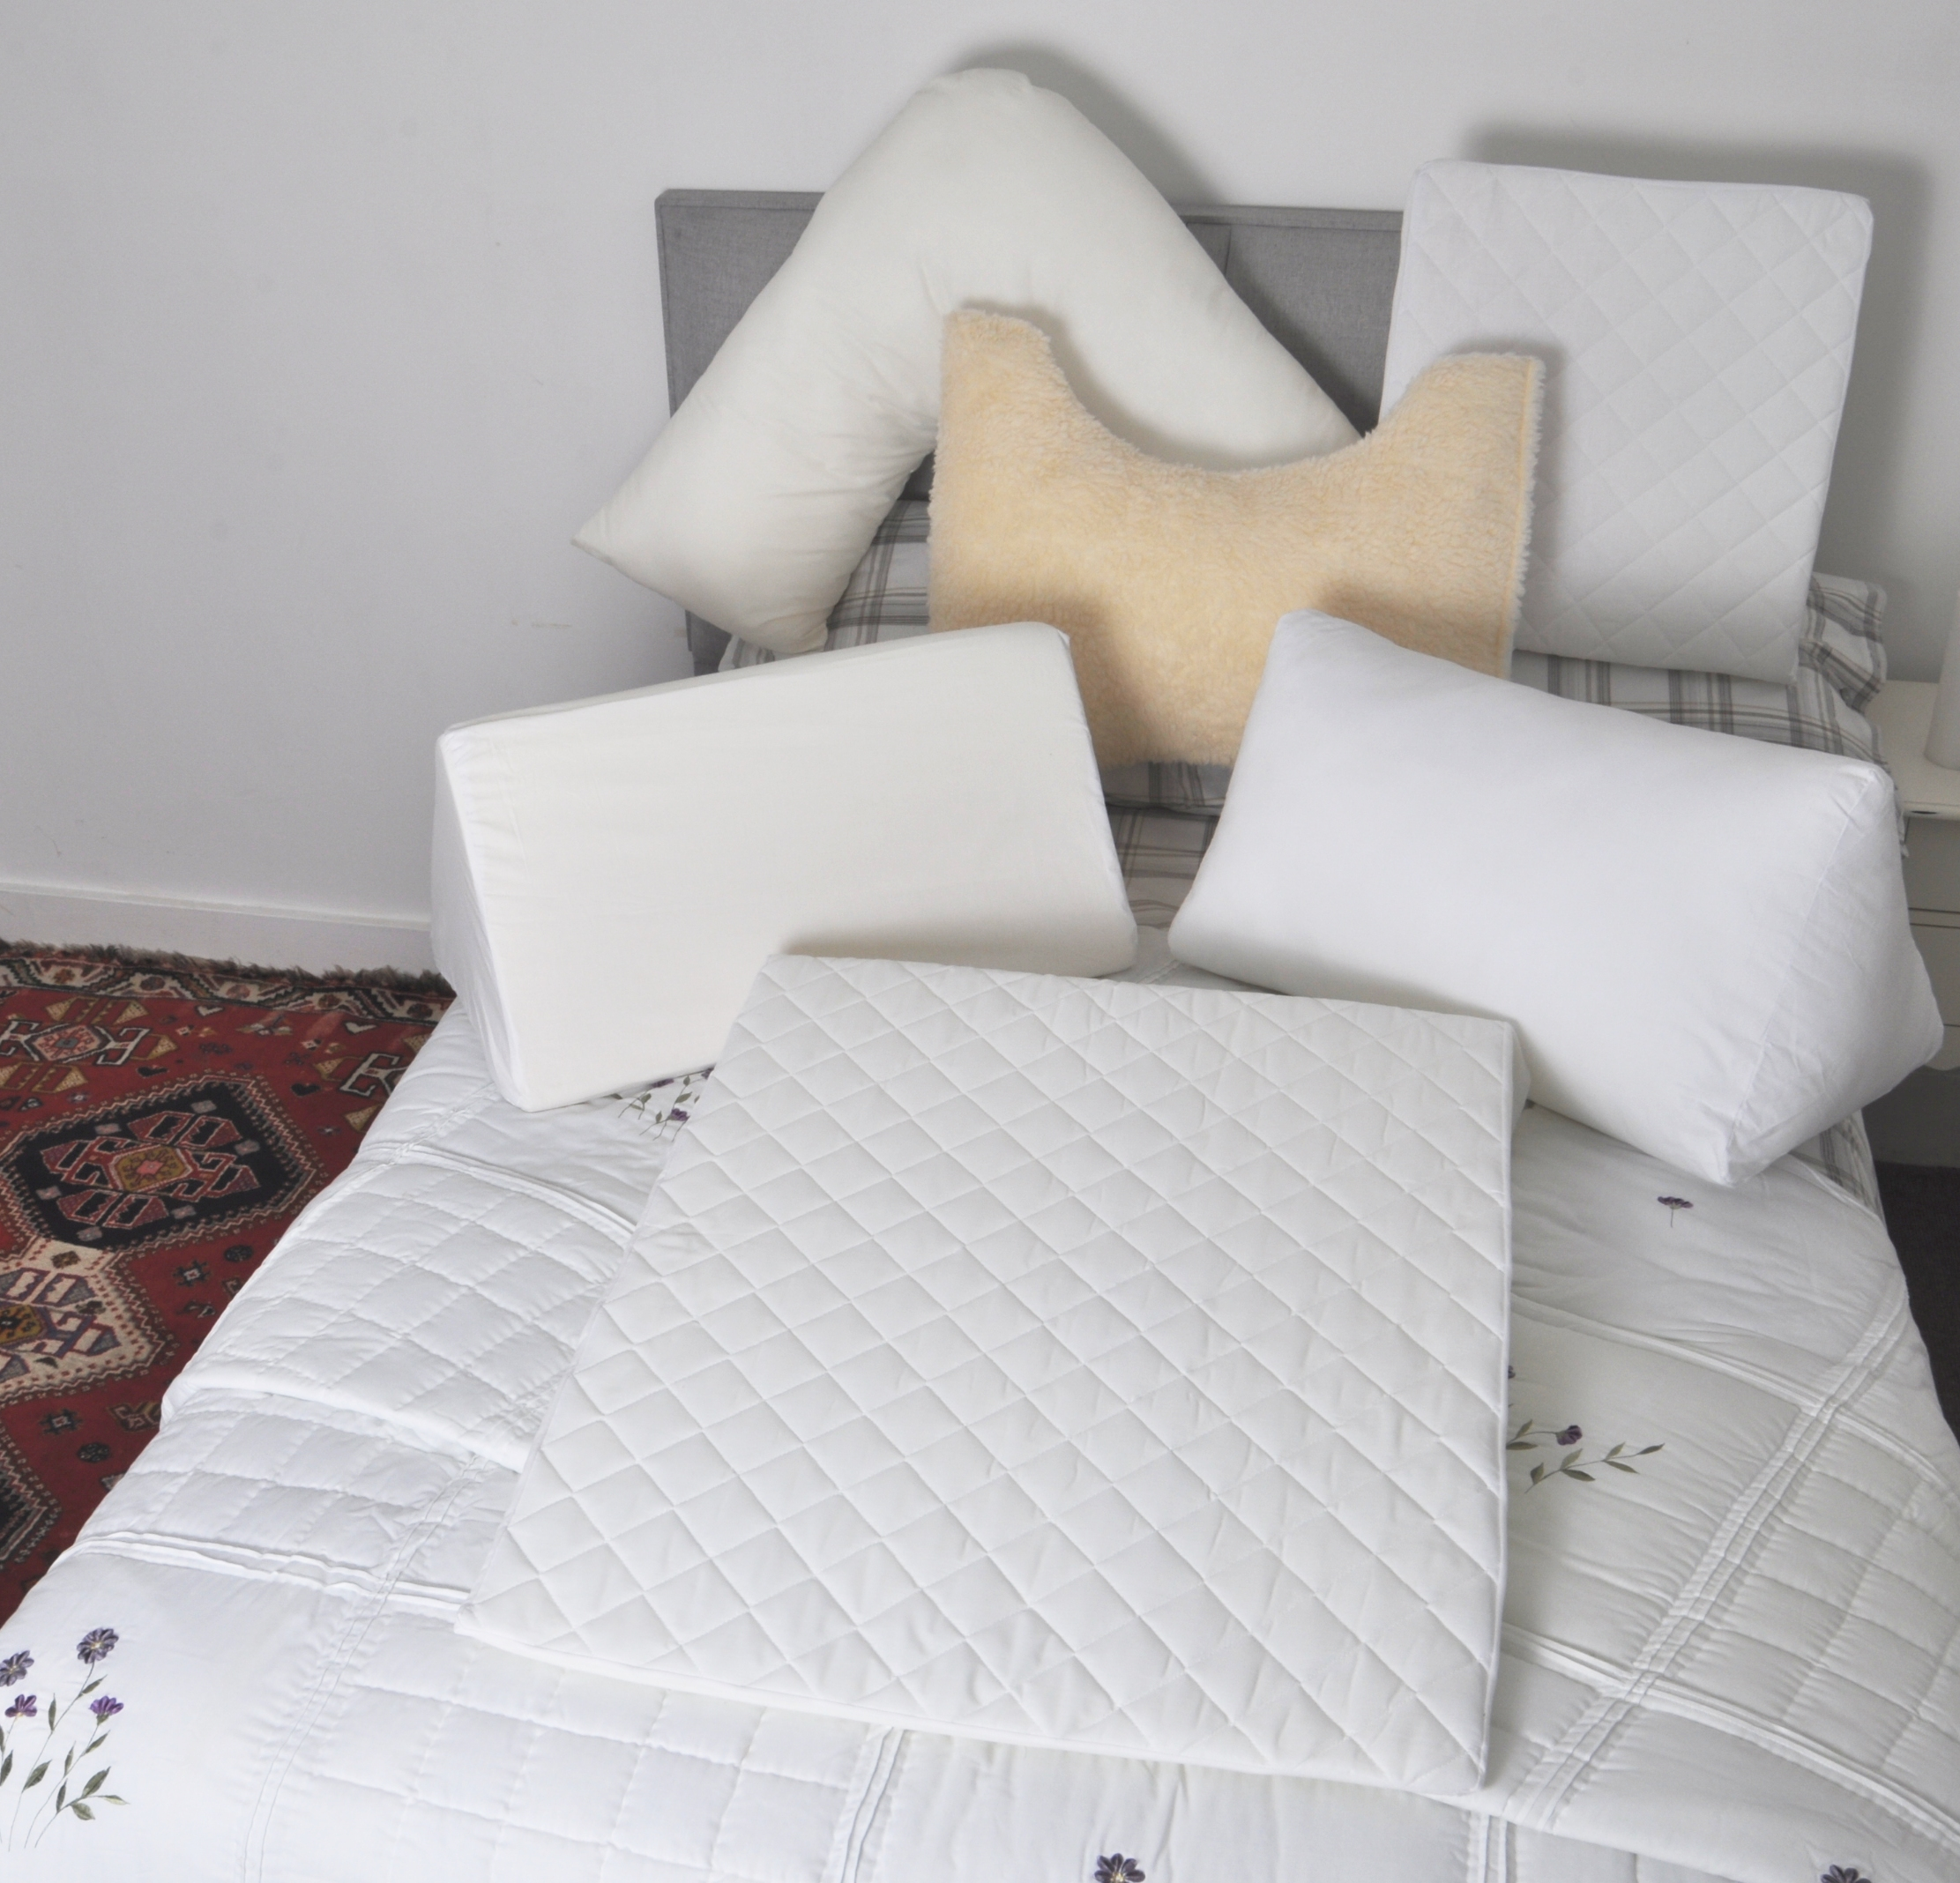 back pain room warranty cooling reading year pillow inches premium for support side bed sleepers wedge or cover memory foam pregnancy